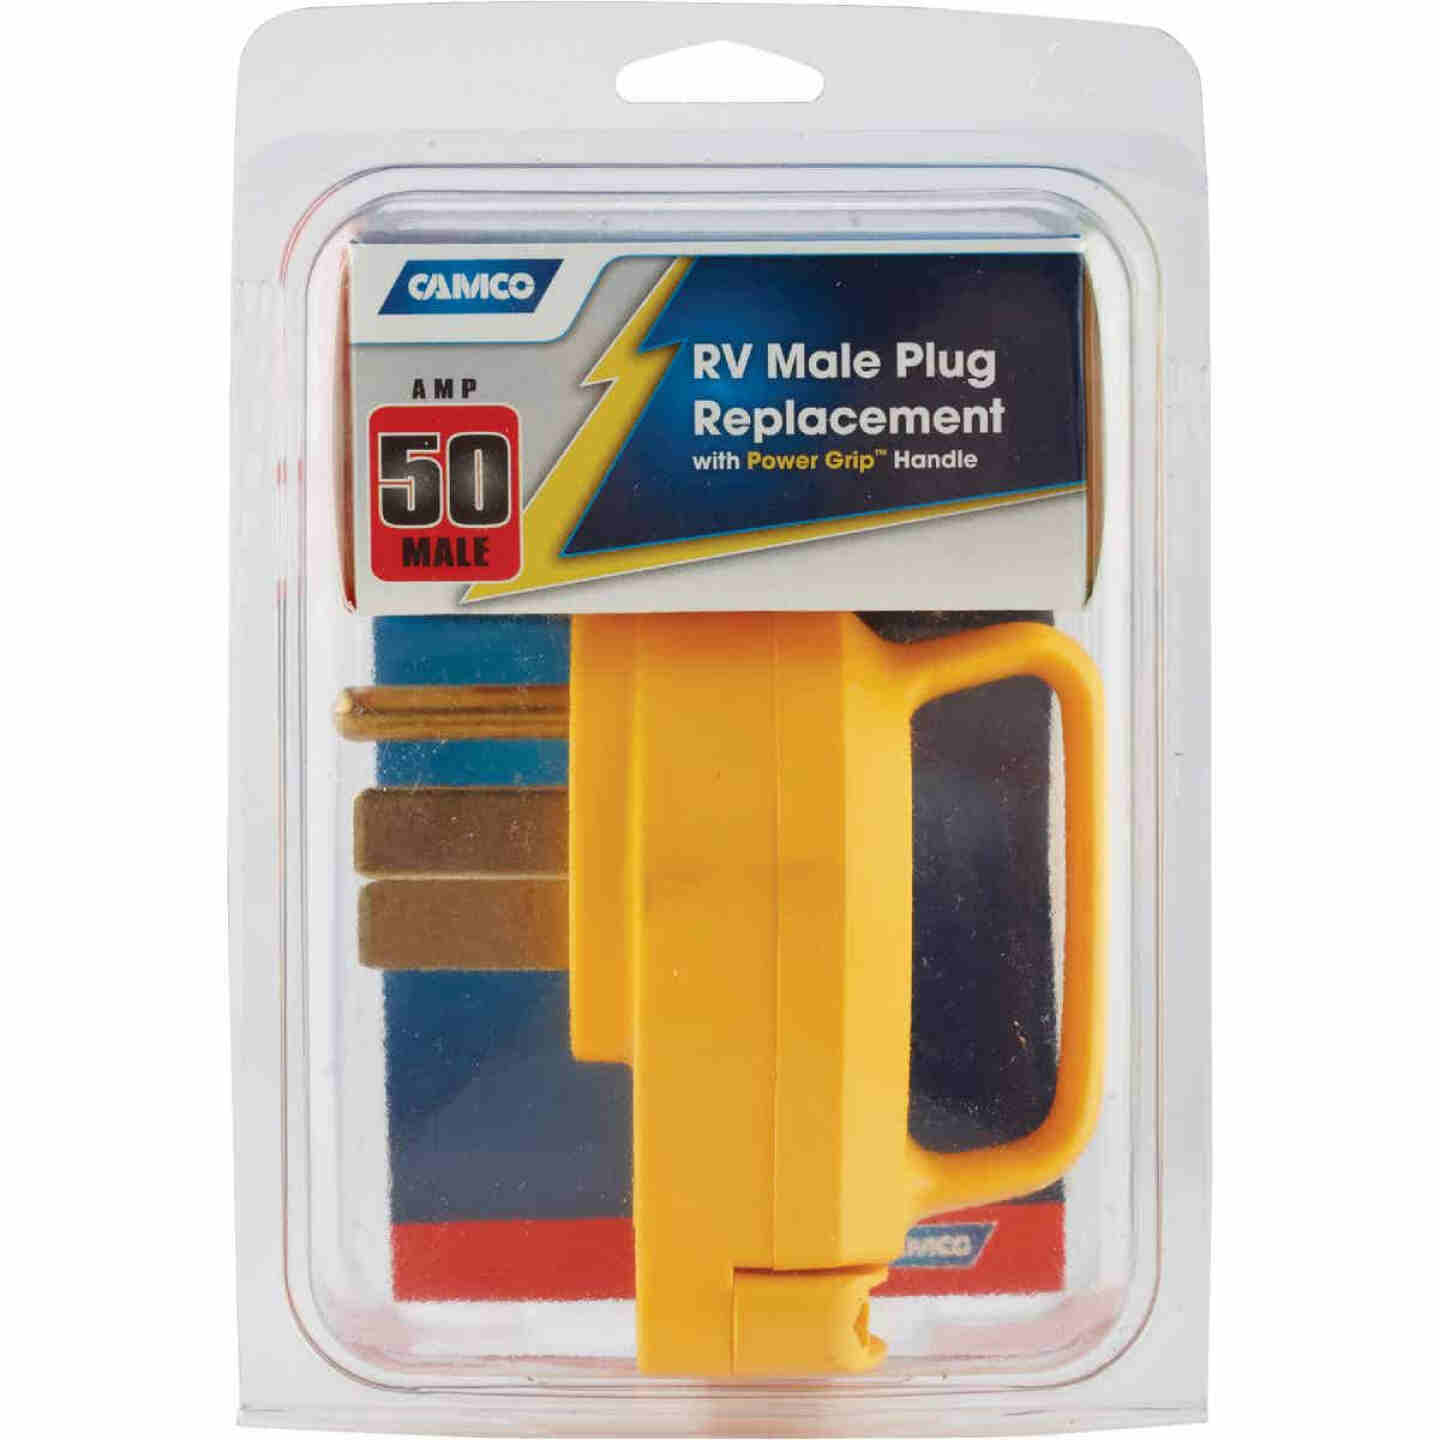 Camco PowerGrip 50A Male Replacement RV Plug Image 2